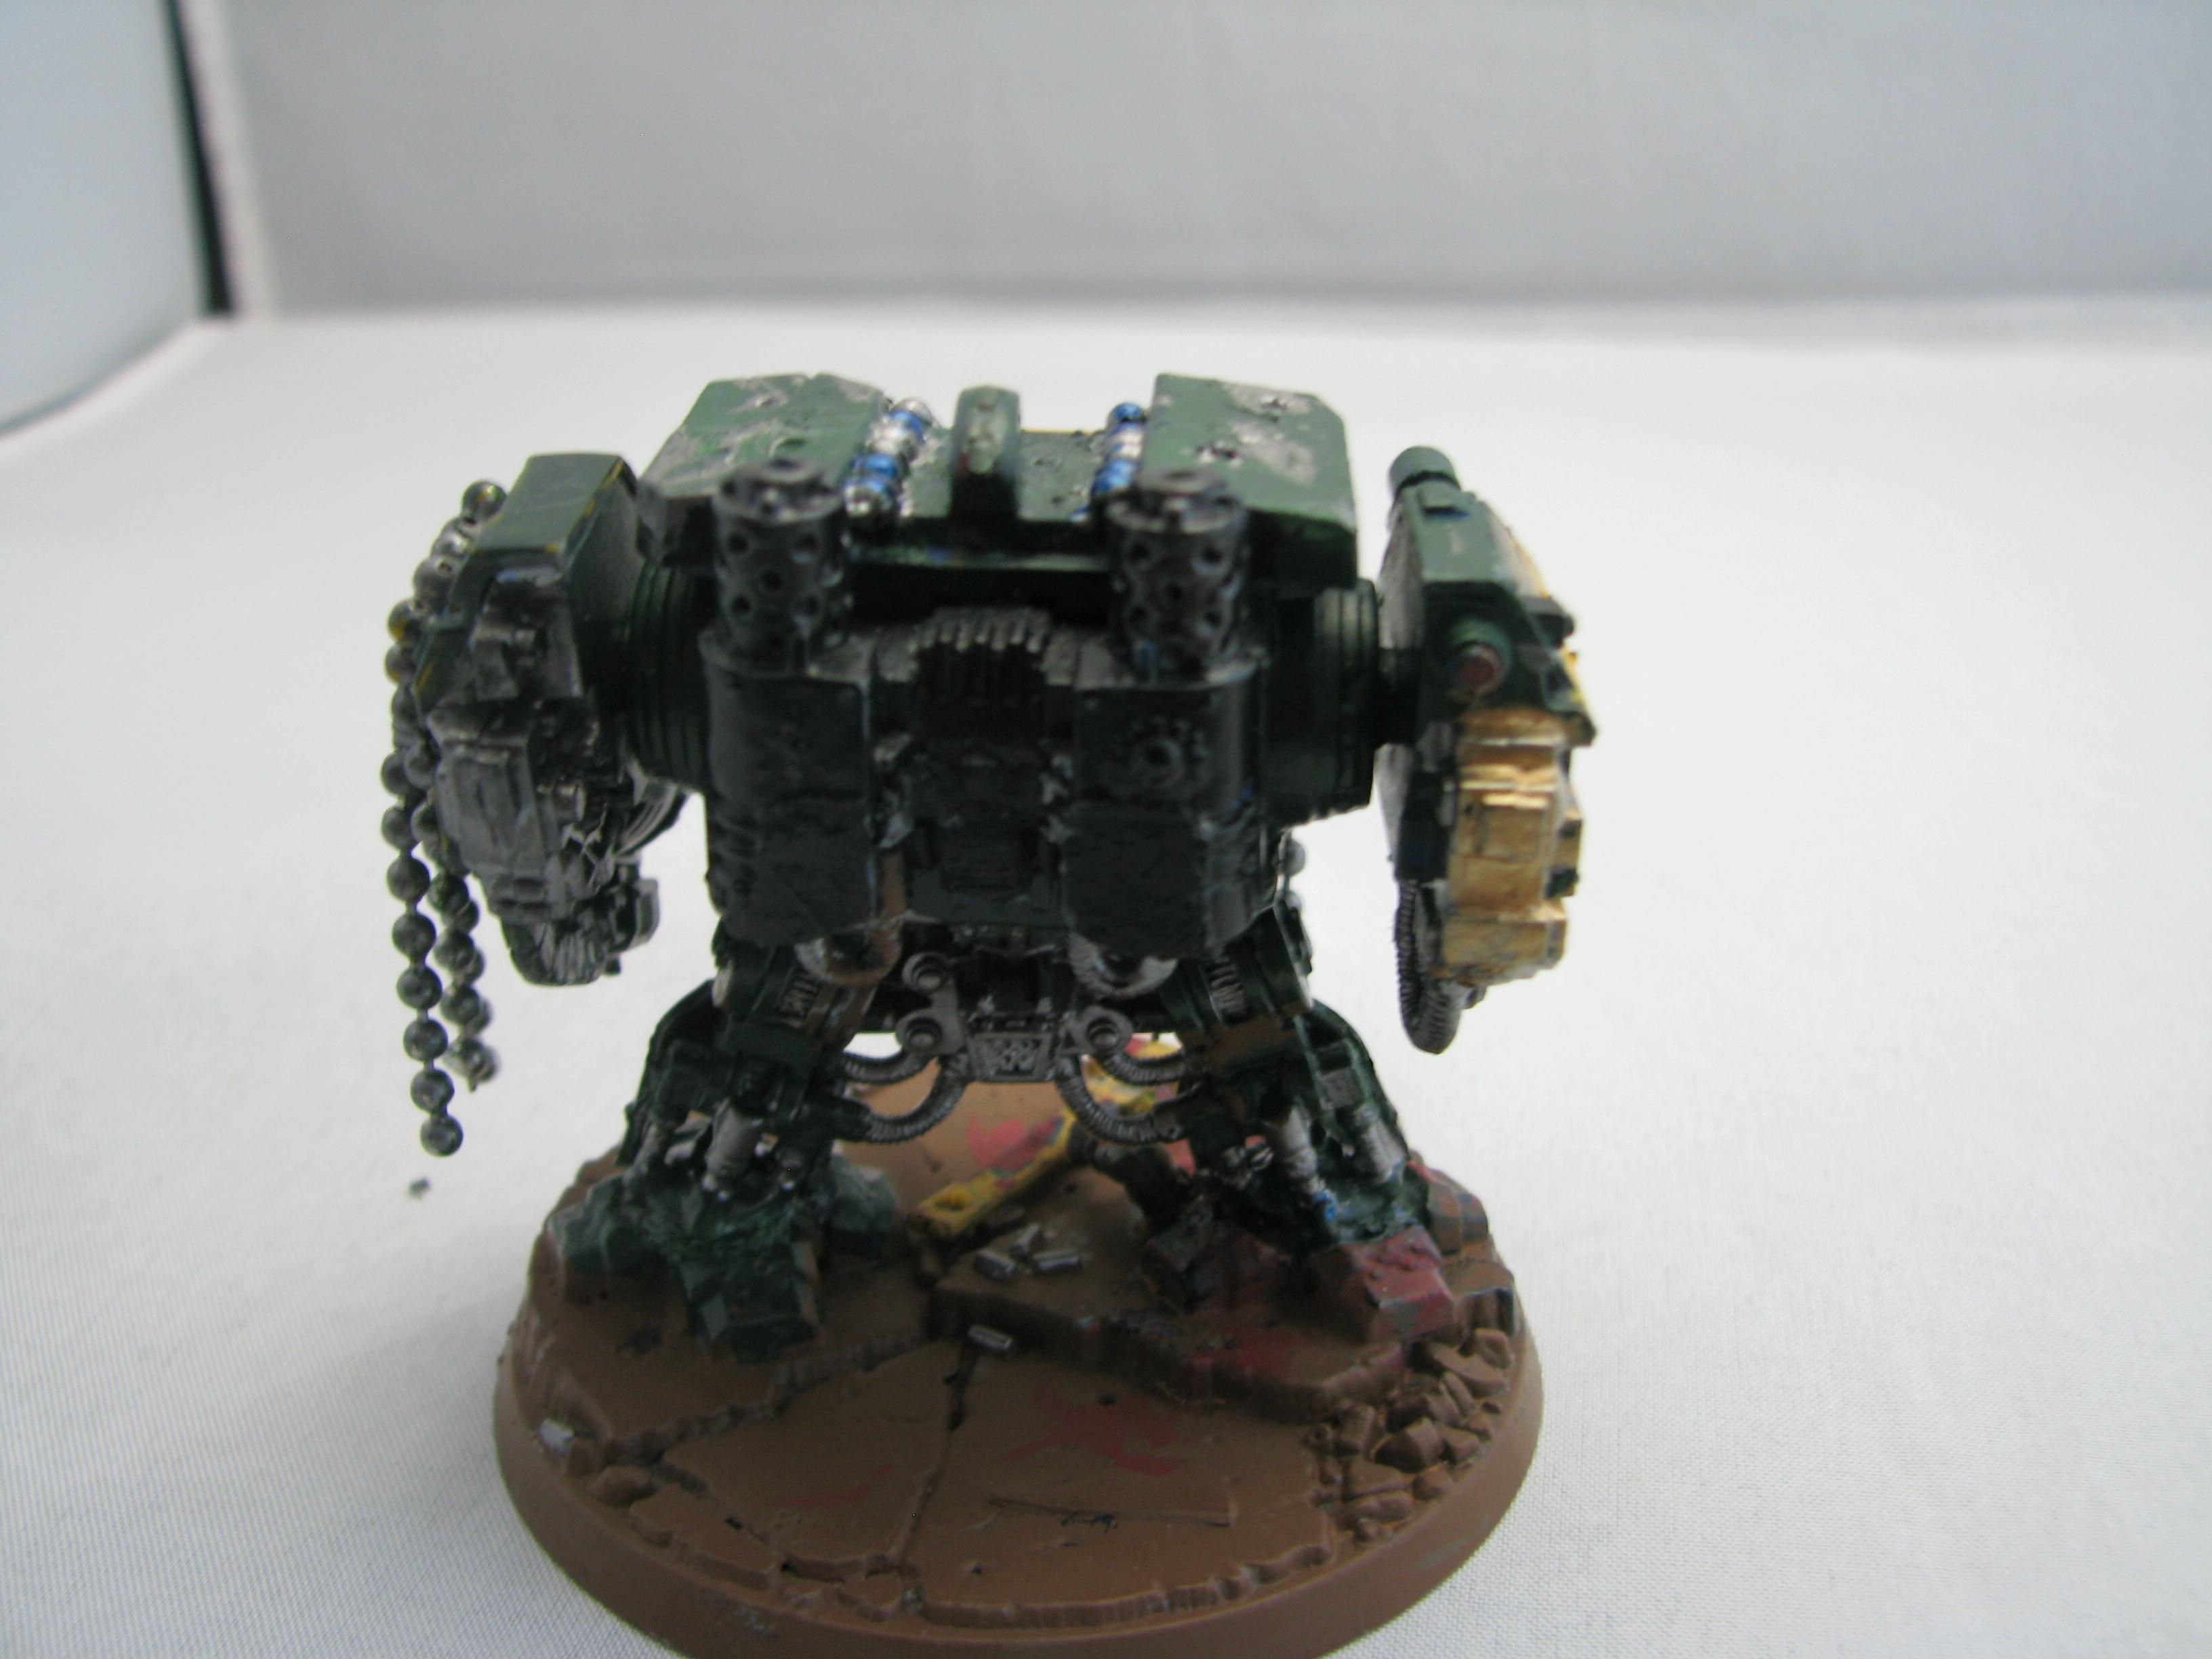 Back, Dreadnought, Space Marines, Warhammer 40,000